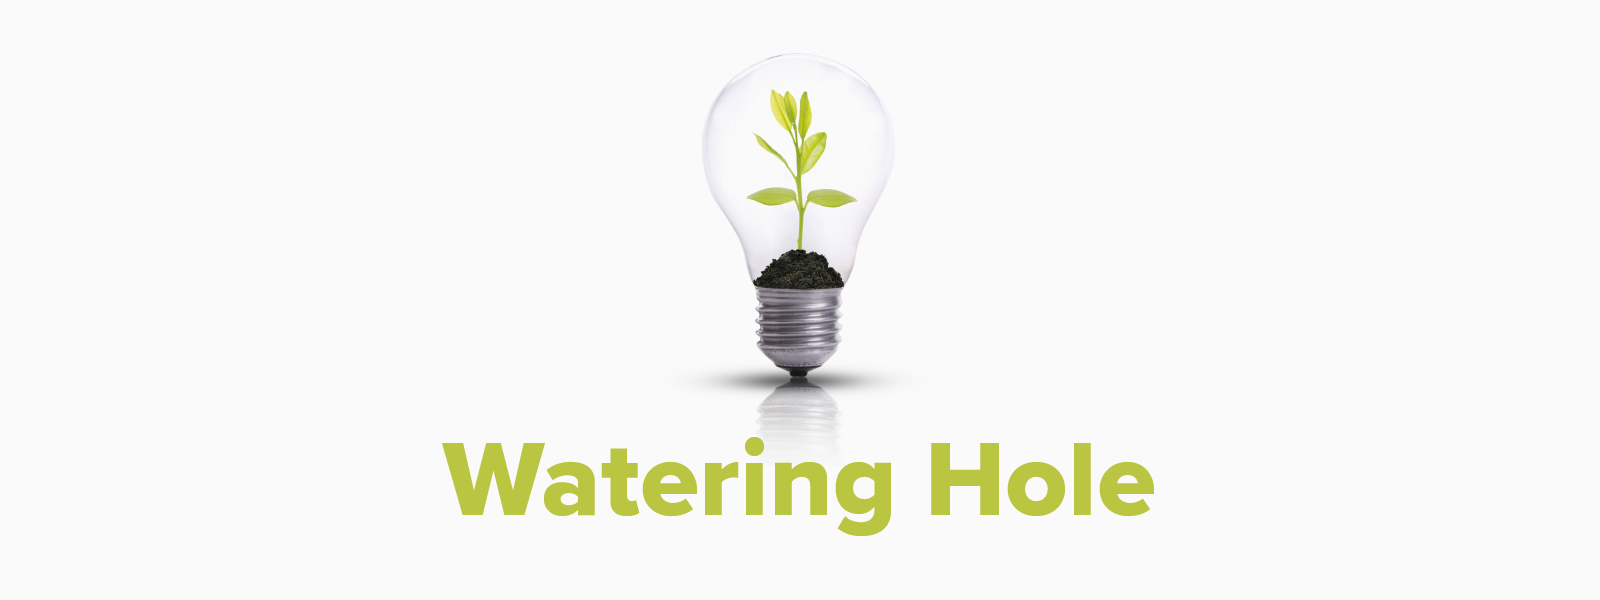 Watering Hole Header